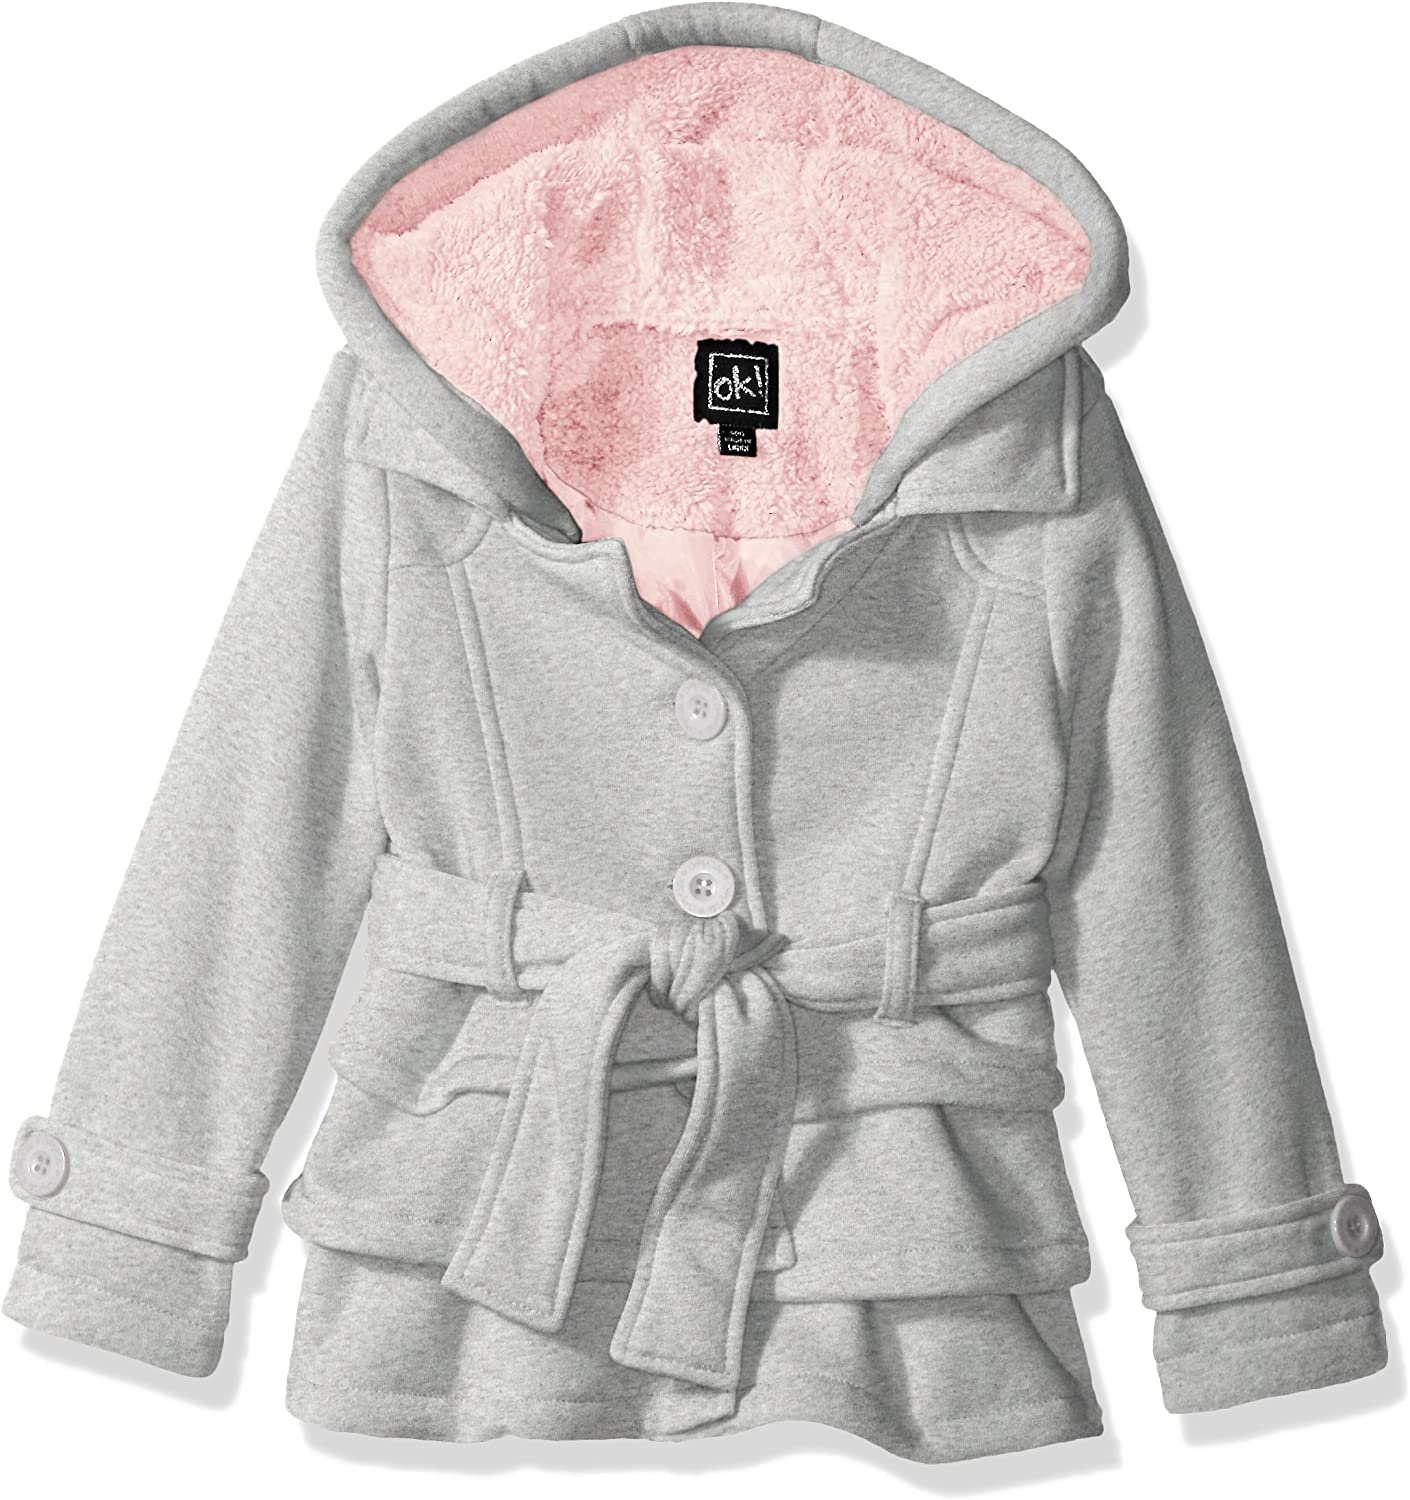 Bokeley Kids Jacket Baby Girls Clothes Winter Faux Fur Coat Thick Warm Outwear